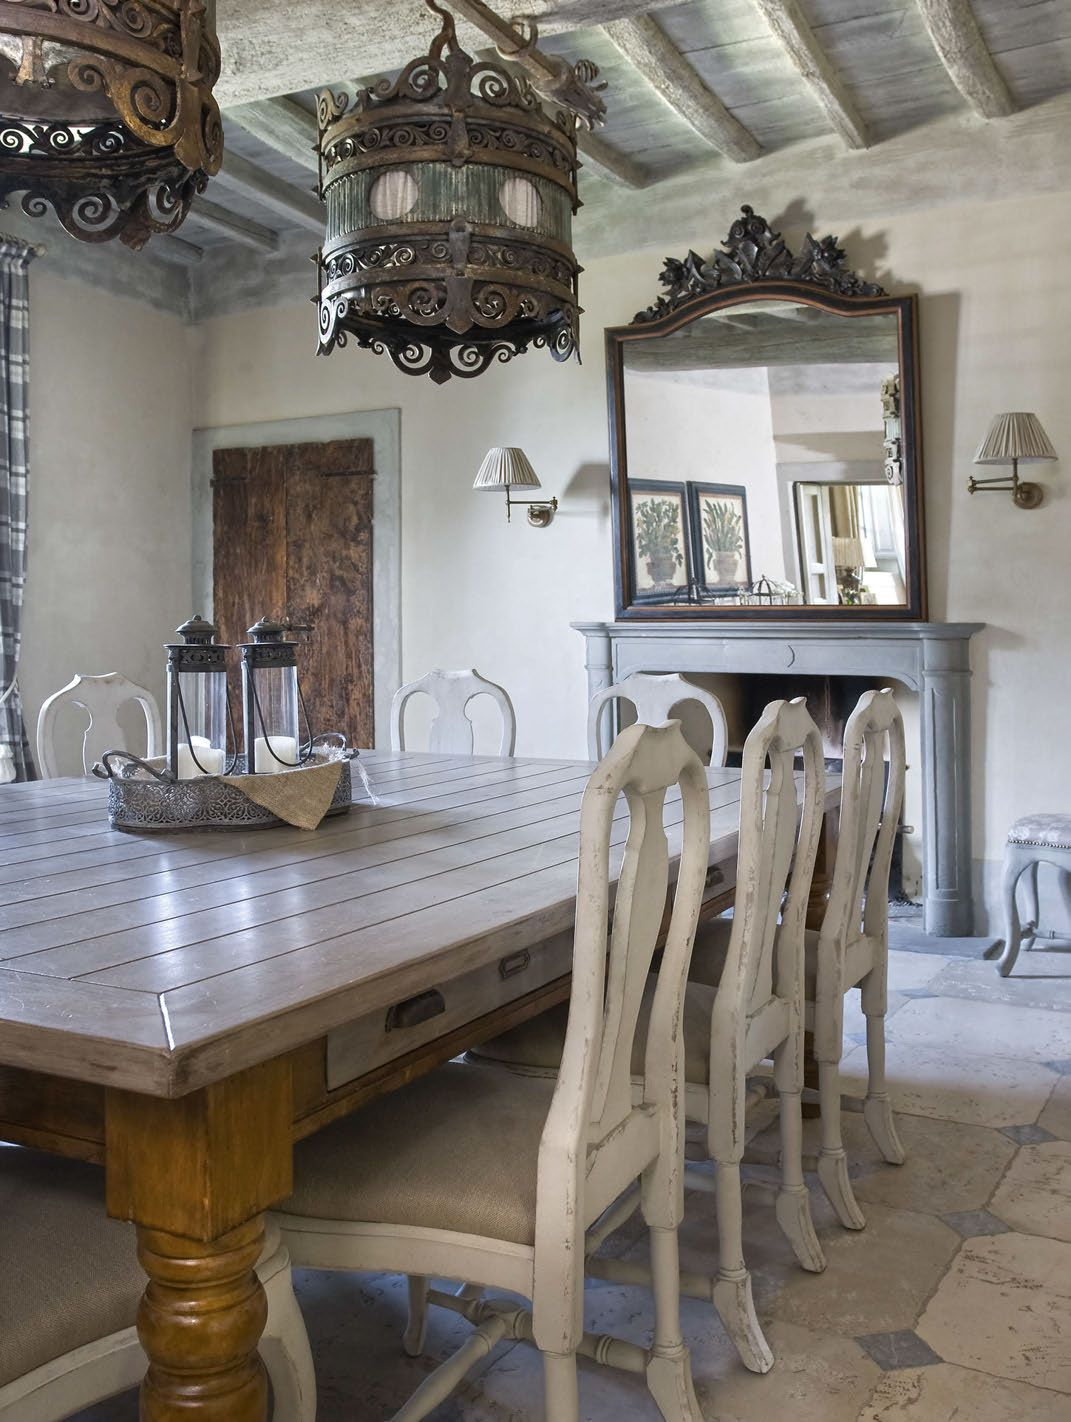 Dining room comedores pinterest l mpara antigua for Comedores con estilo